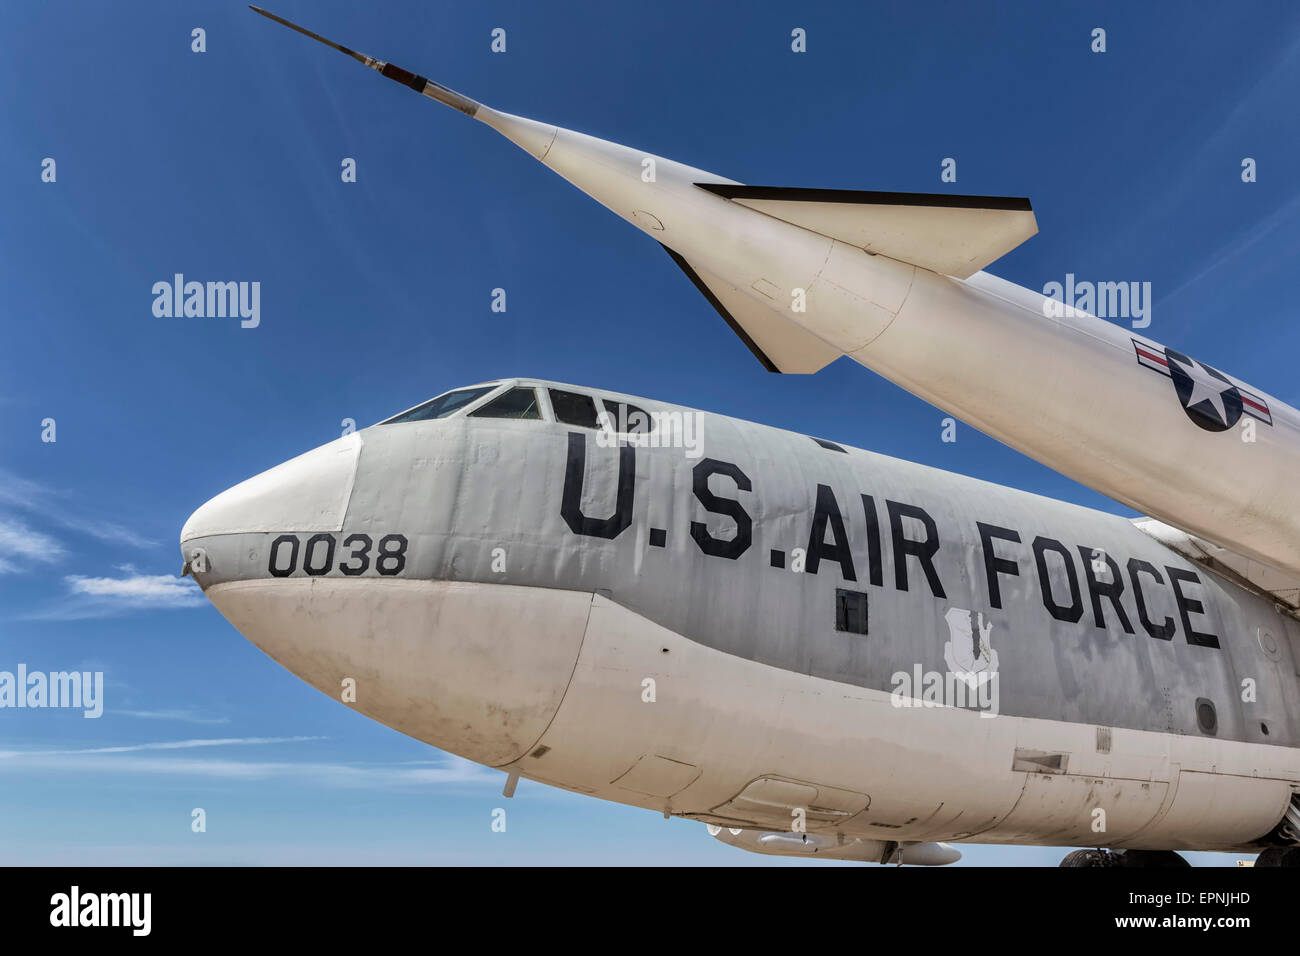 Boeing B52 Stratofortress bomber of the USAF - Stock Image